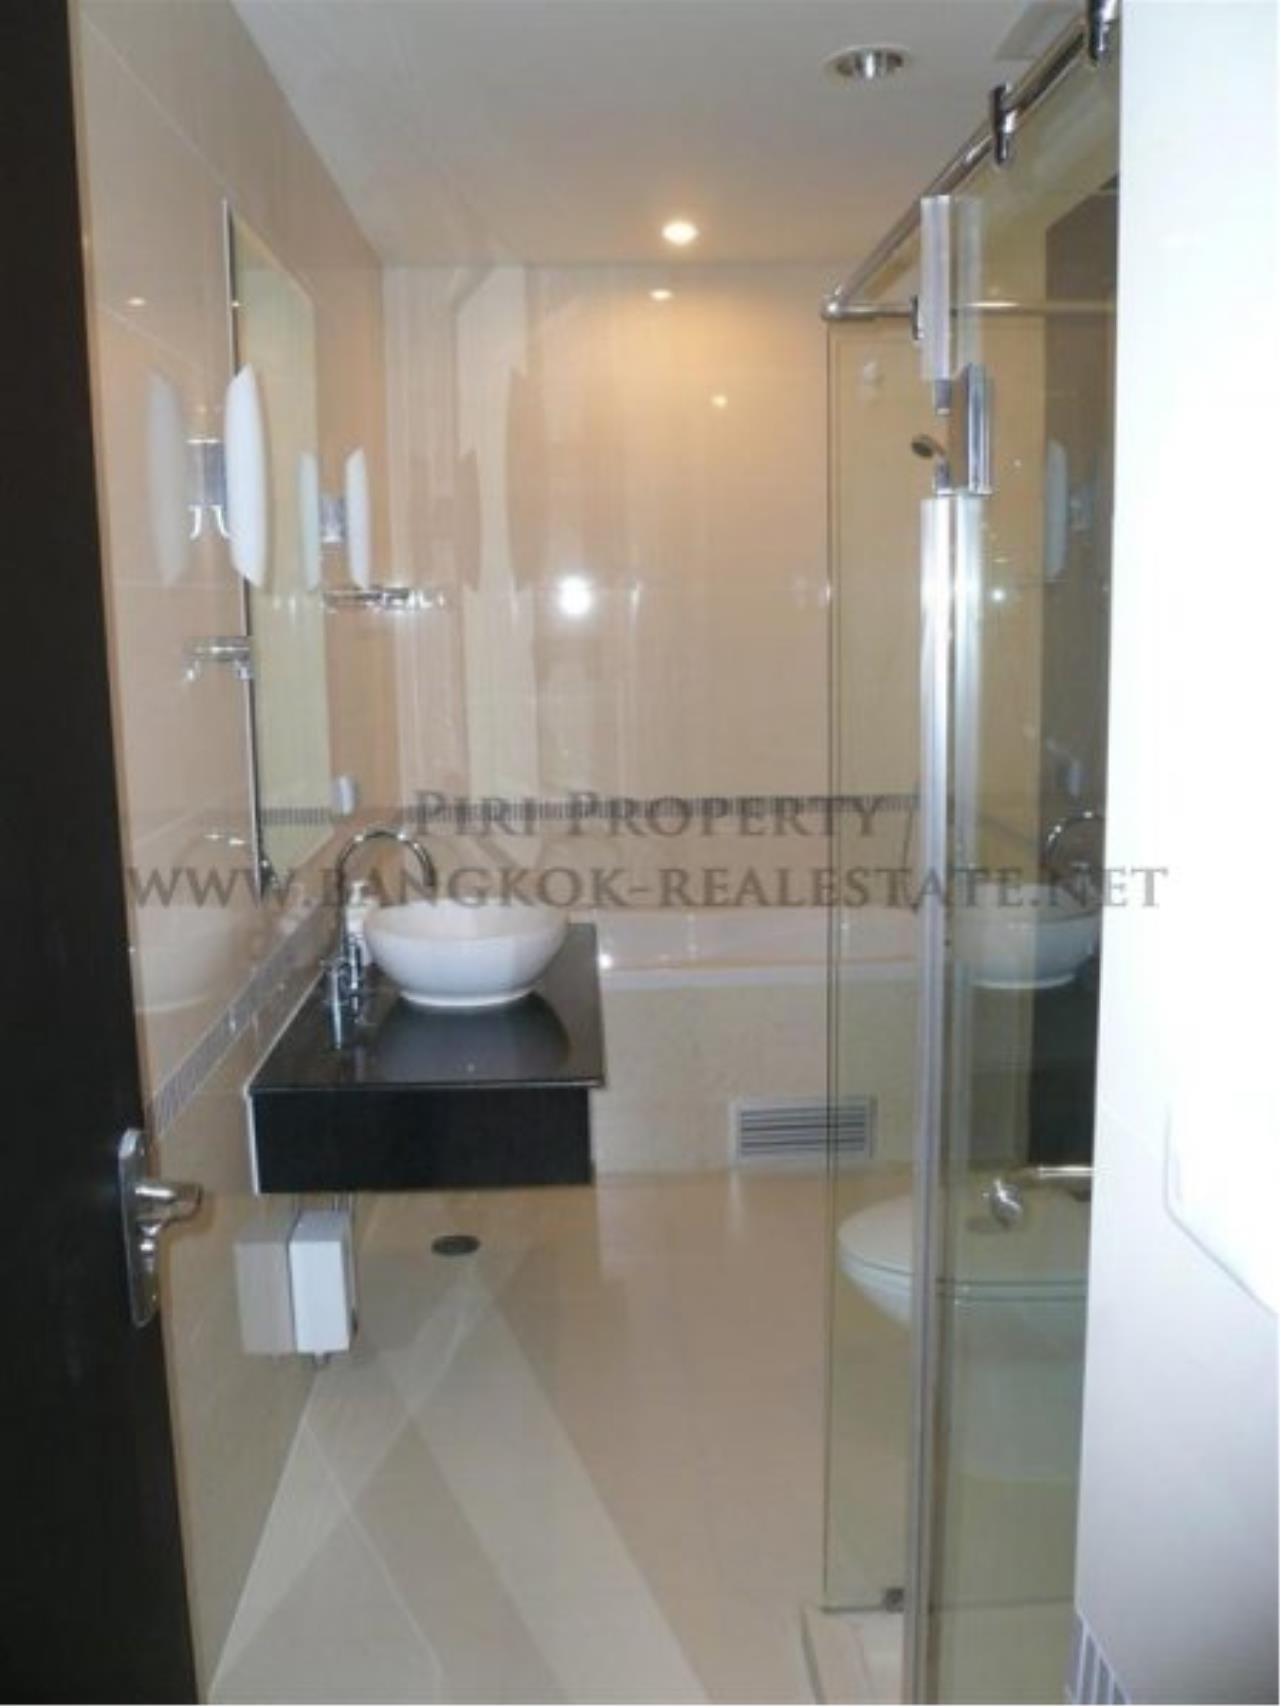 Piri Property Agency's Fully furnished 1 Bedroom next to Ratchatewi BTS - Baan Klang Krung Siam Pathumwan 7